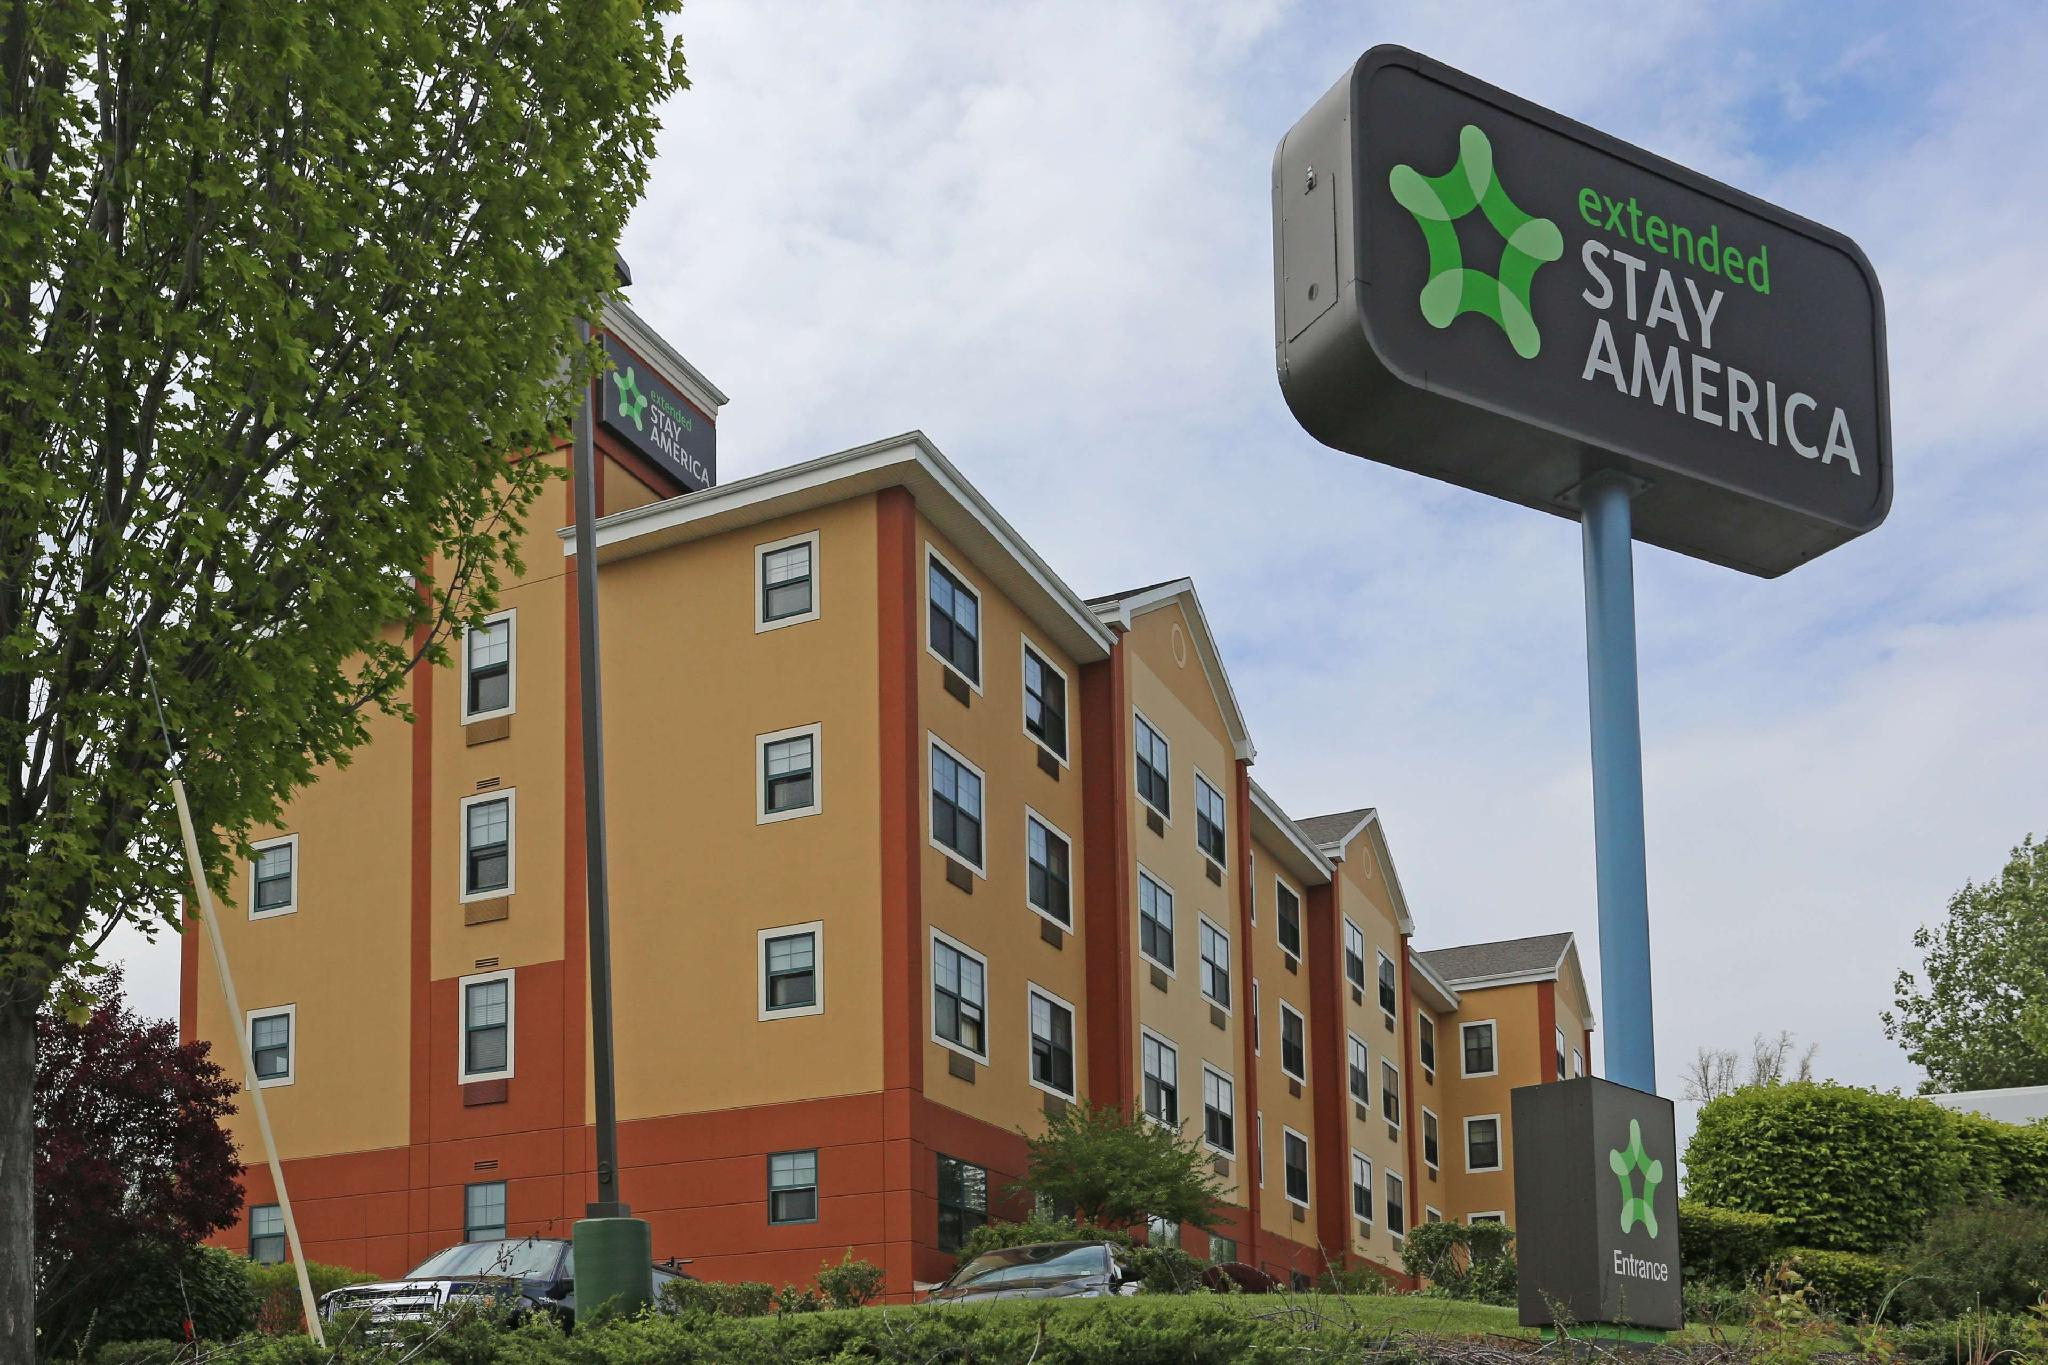 Extended Stay America Philadelphia Plymouth Meeting